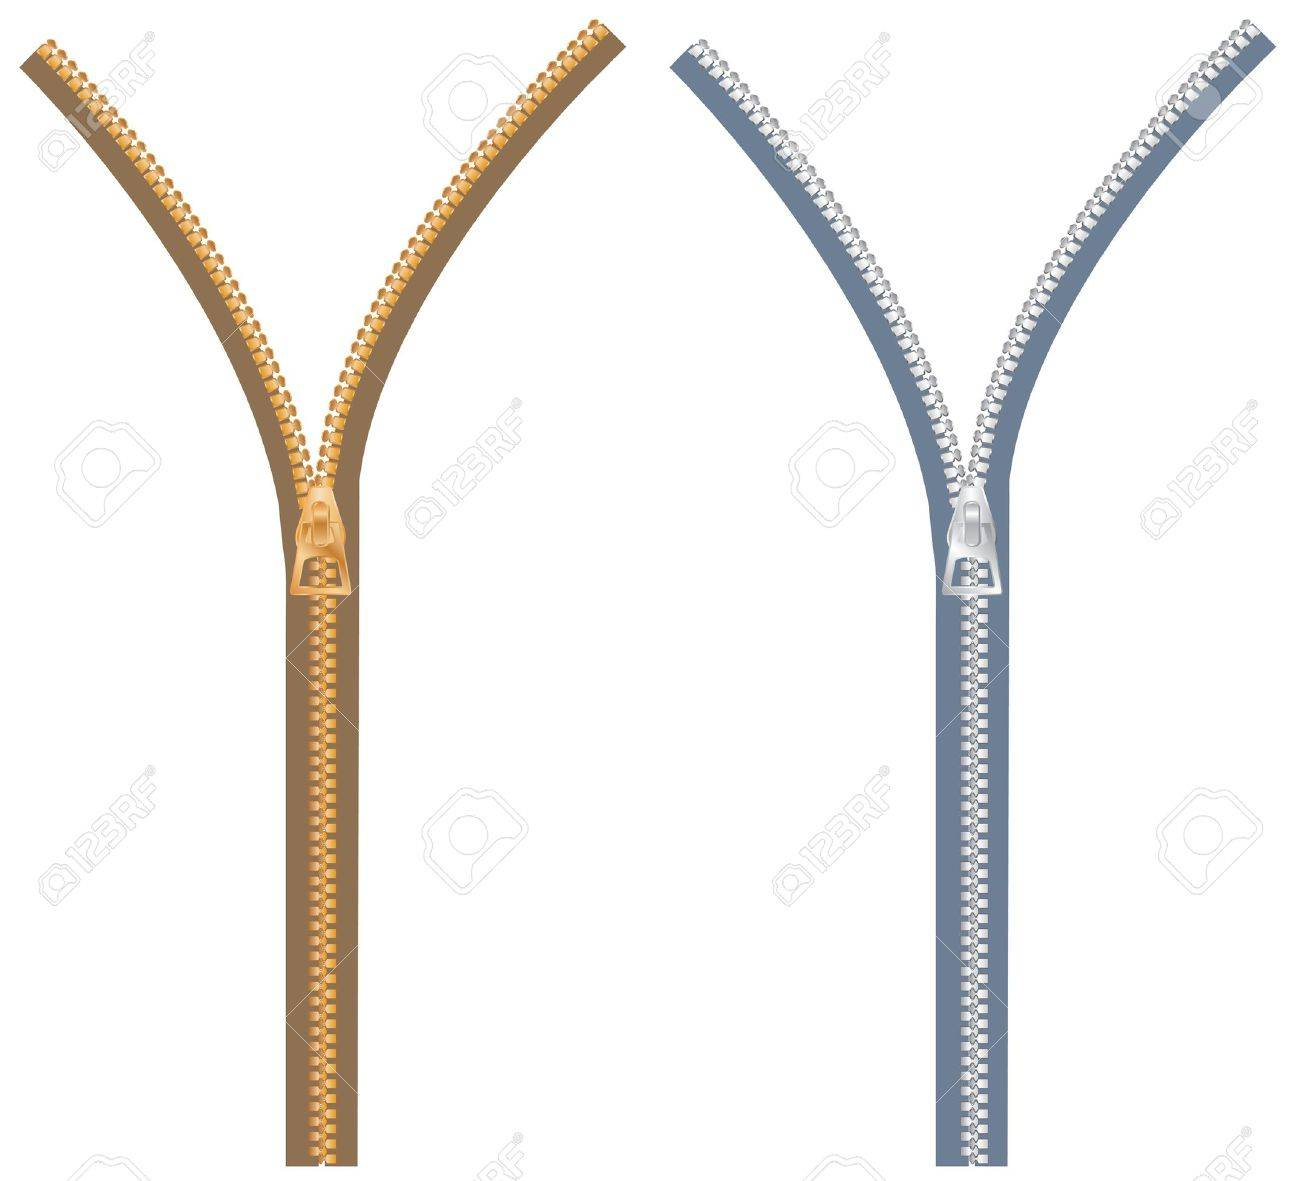 zipper in two color variations - 7196529